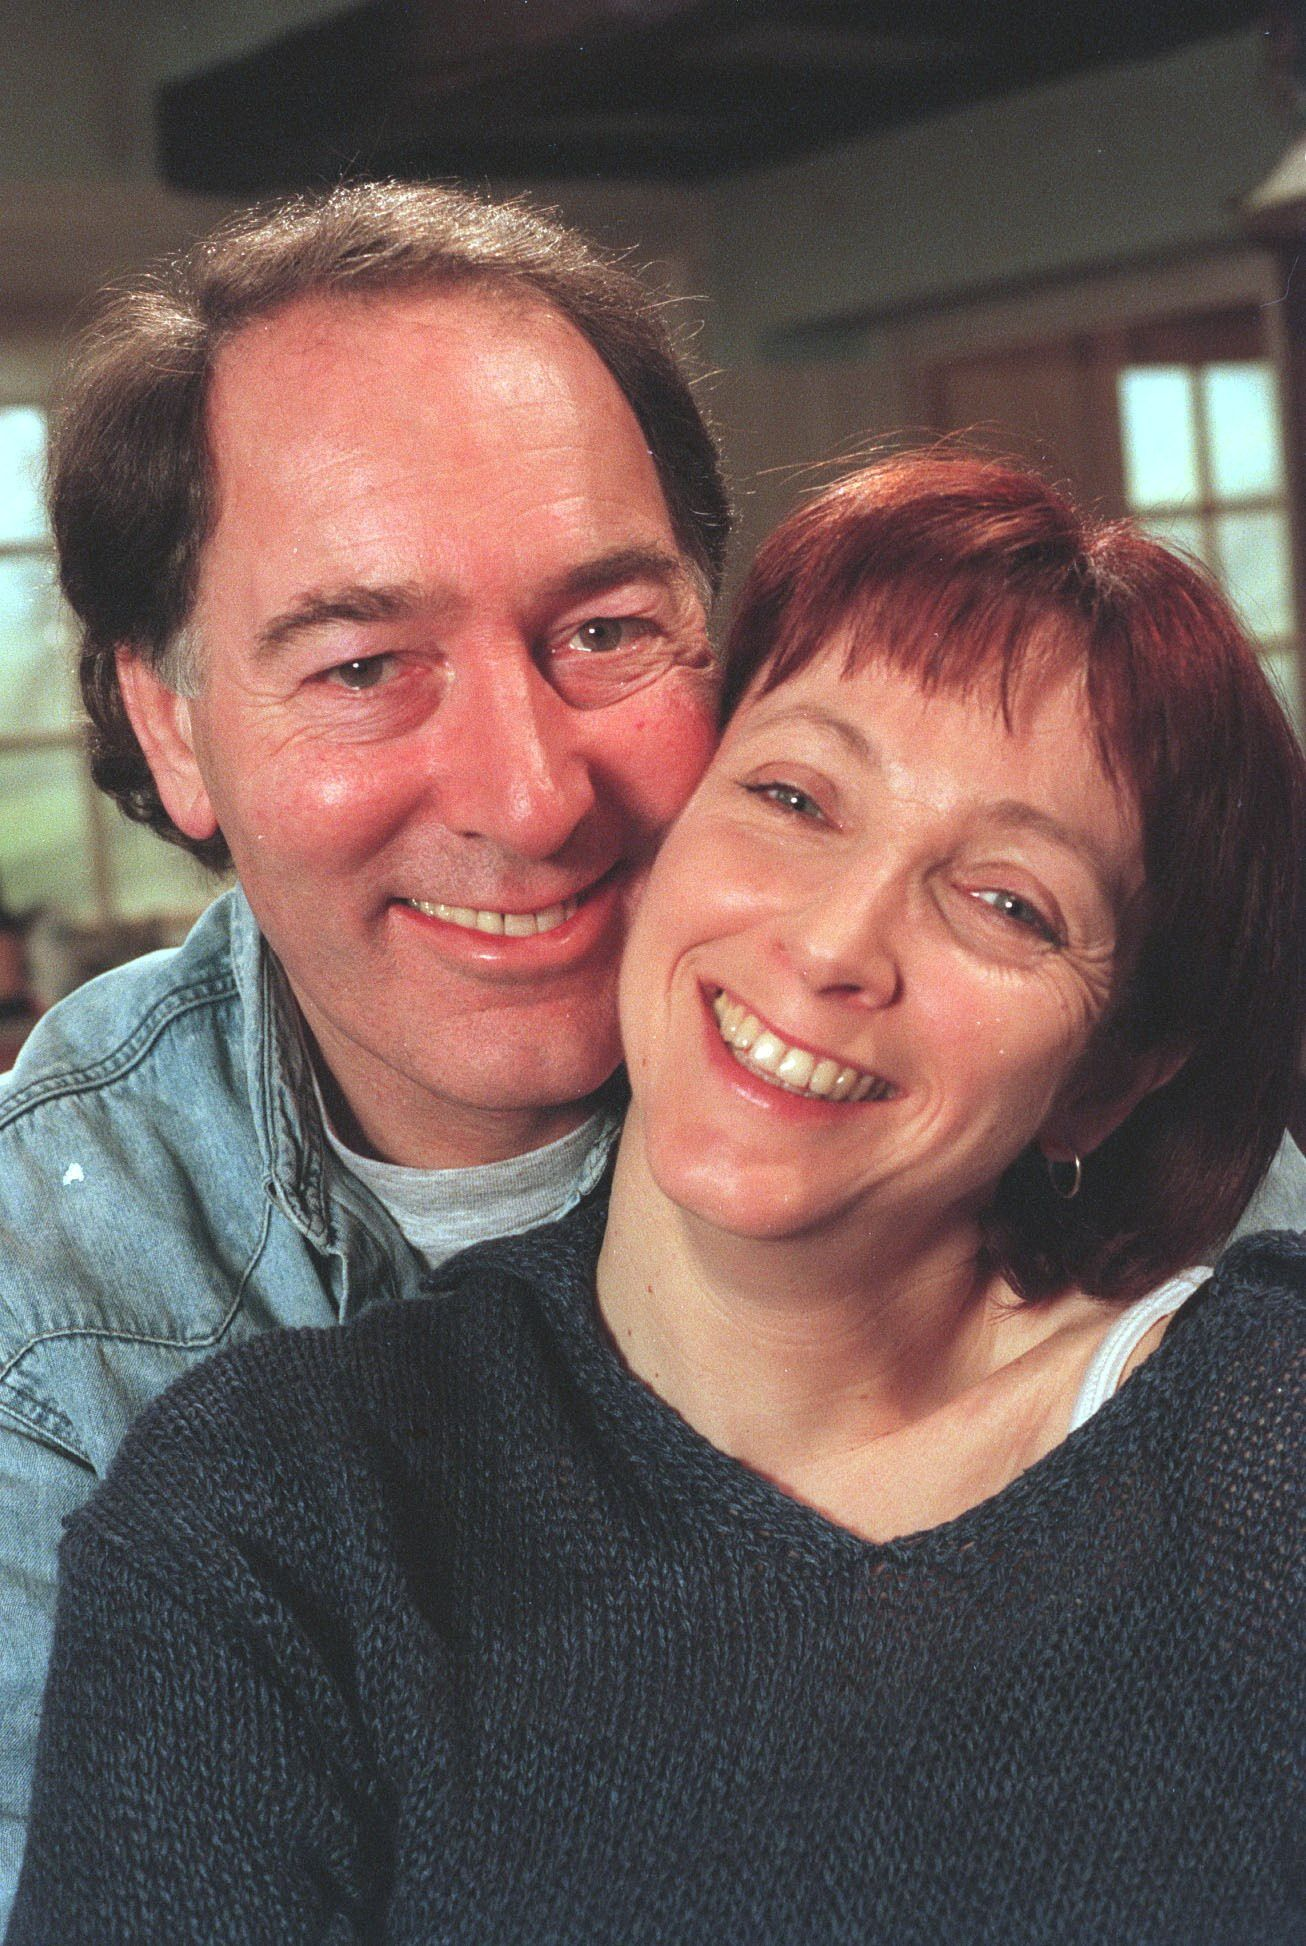 Editorial use only Mandatory Credit: Photo by ITV/REX/Shutterstock (673498qx) 'Emmerdale' TV - 2000 Jack (Clive Hornby) and Sarah Sugden (Alyson Spiro) ITV ARCHIVE